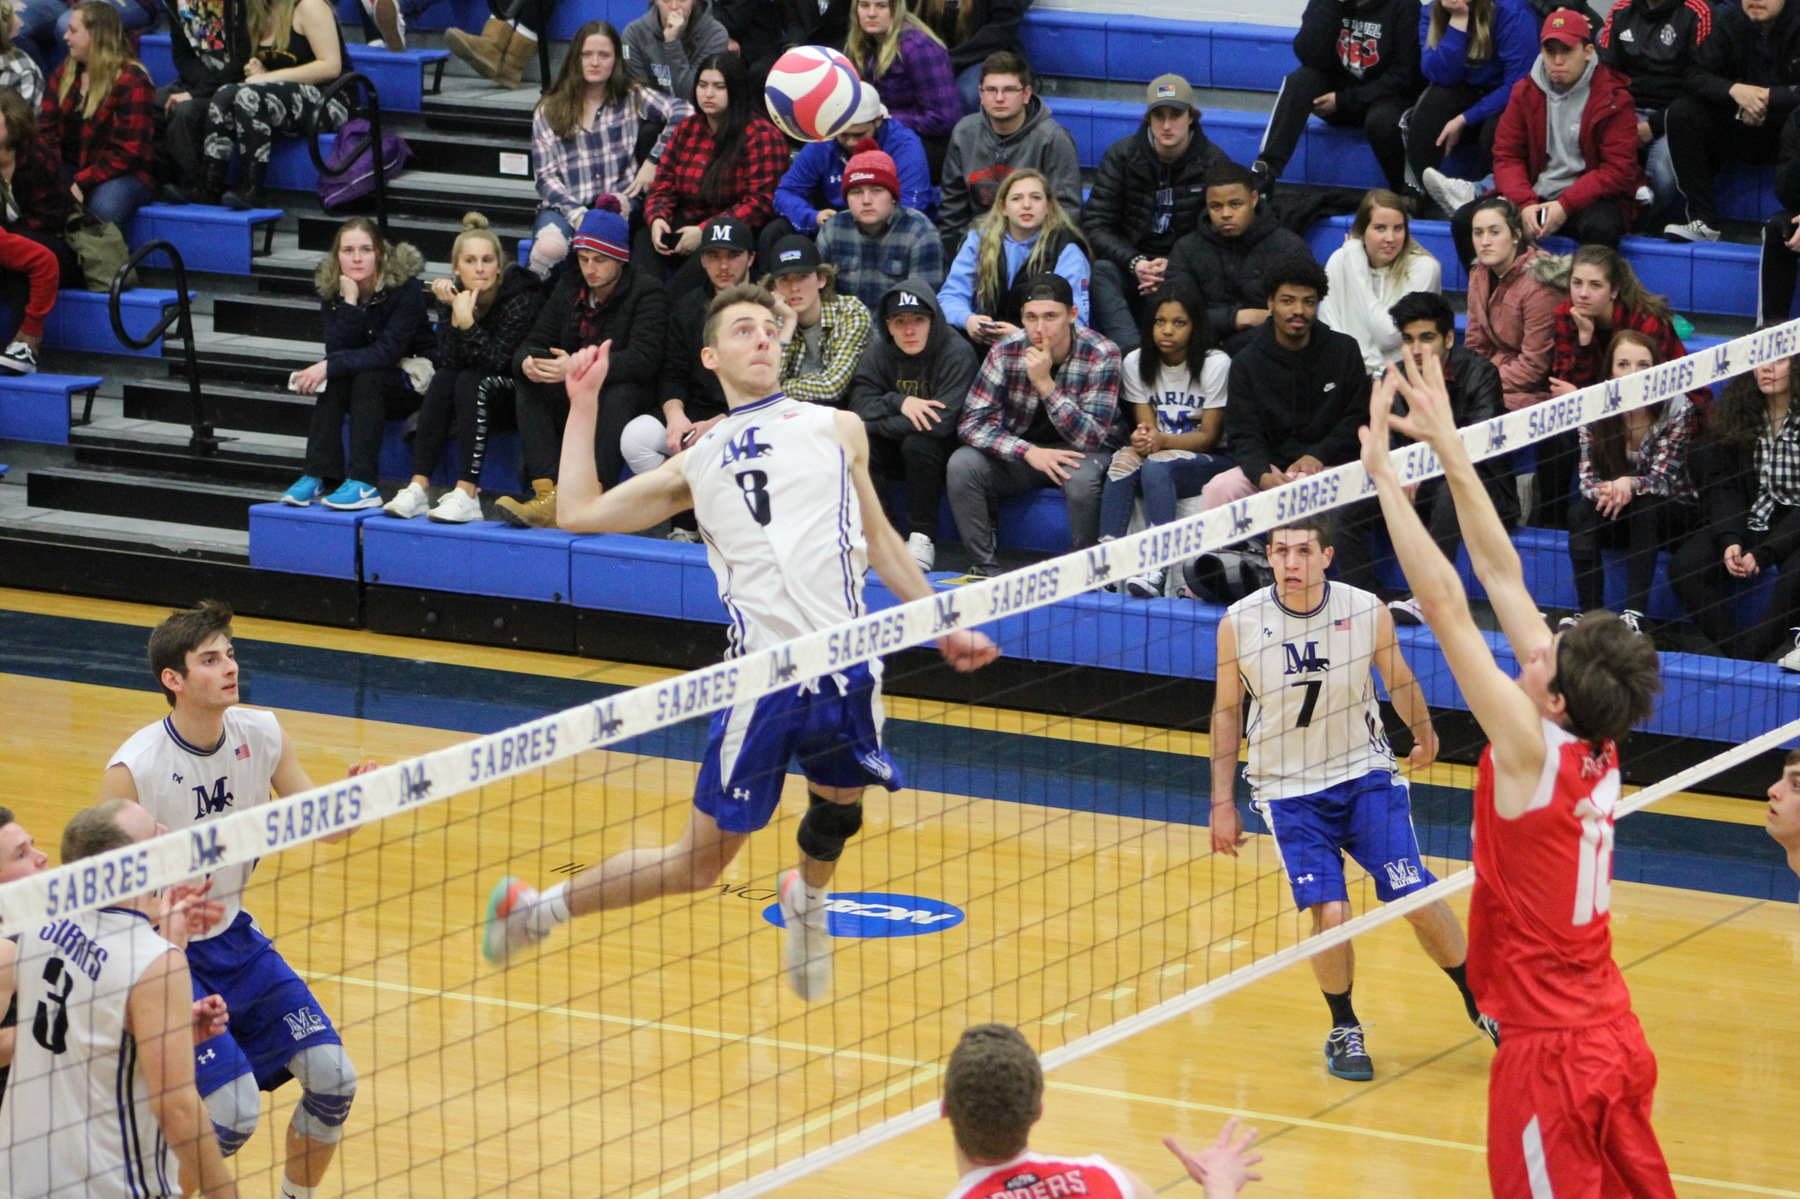 Jacob DeGroot goes up for an attack.